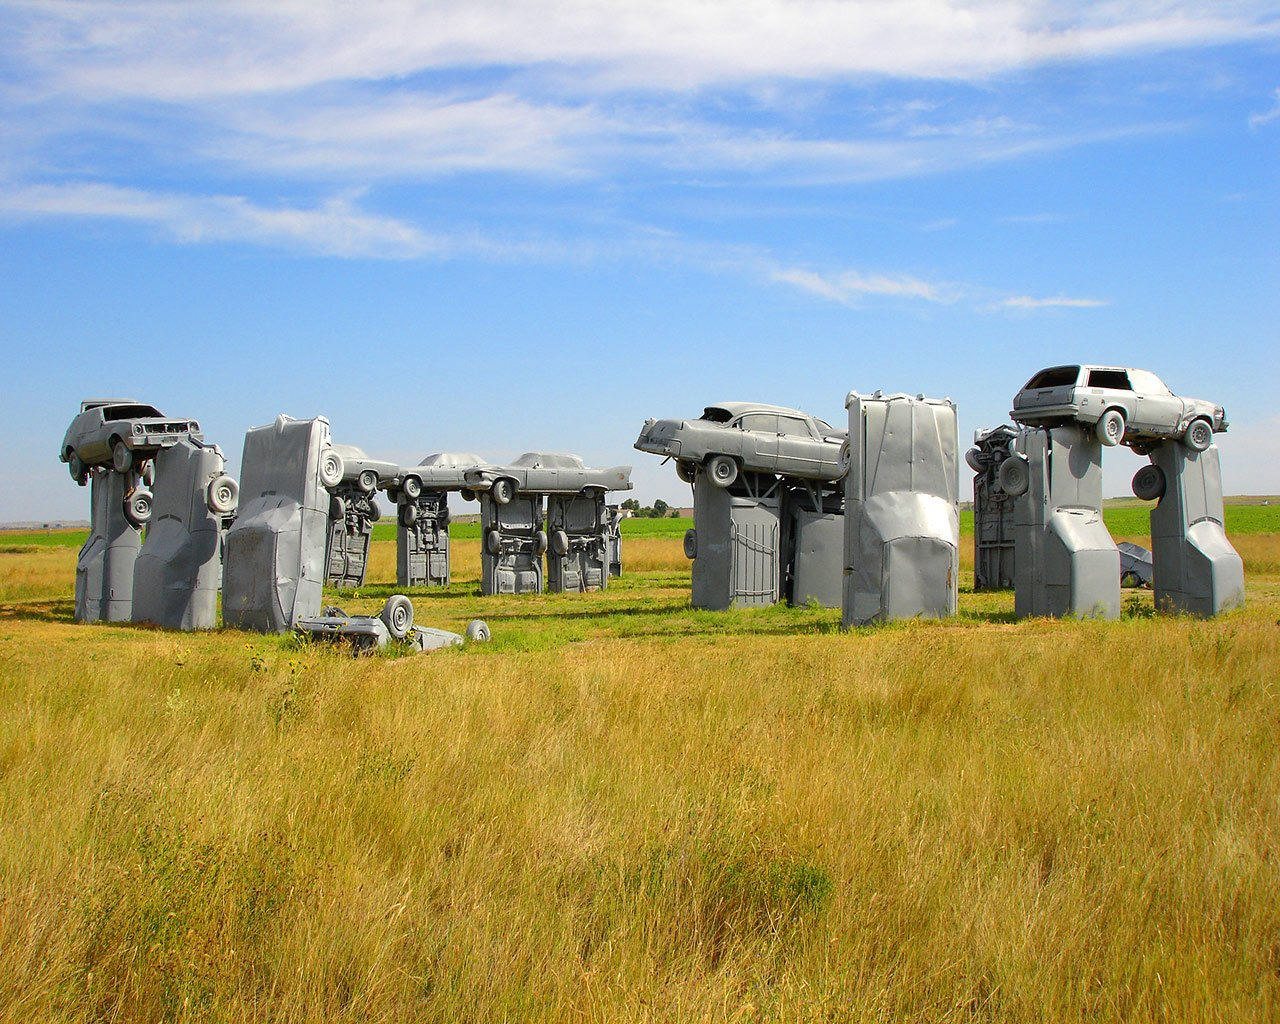 This isn't Stonehnege... It's Carhenge of course!